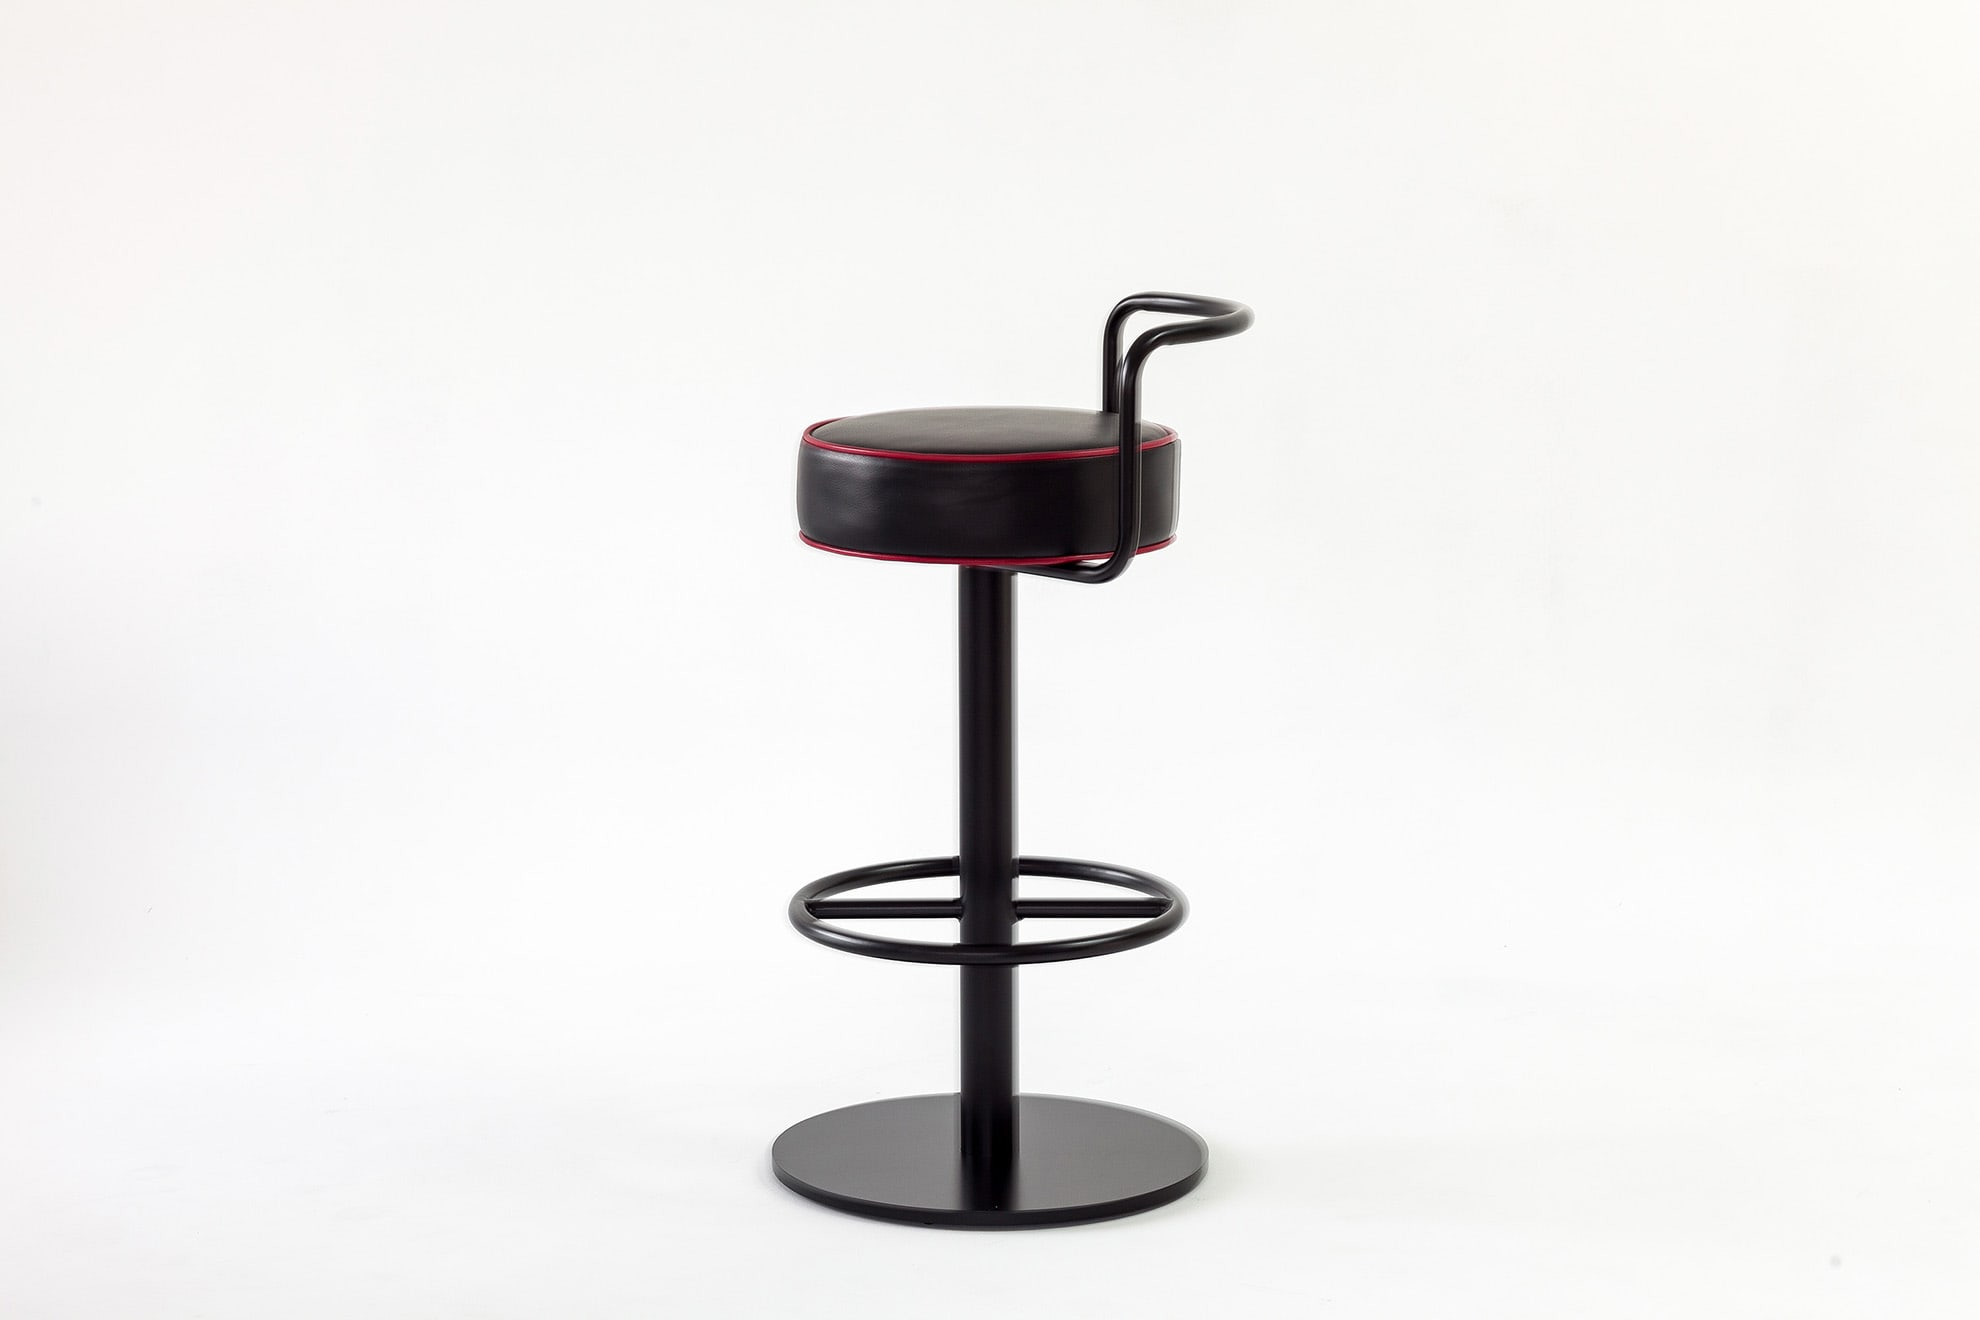 Picture of: Toposworkshop Heavy Duty Bar Stool Topos Workshop